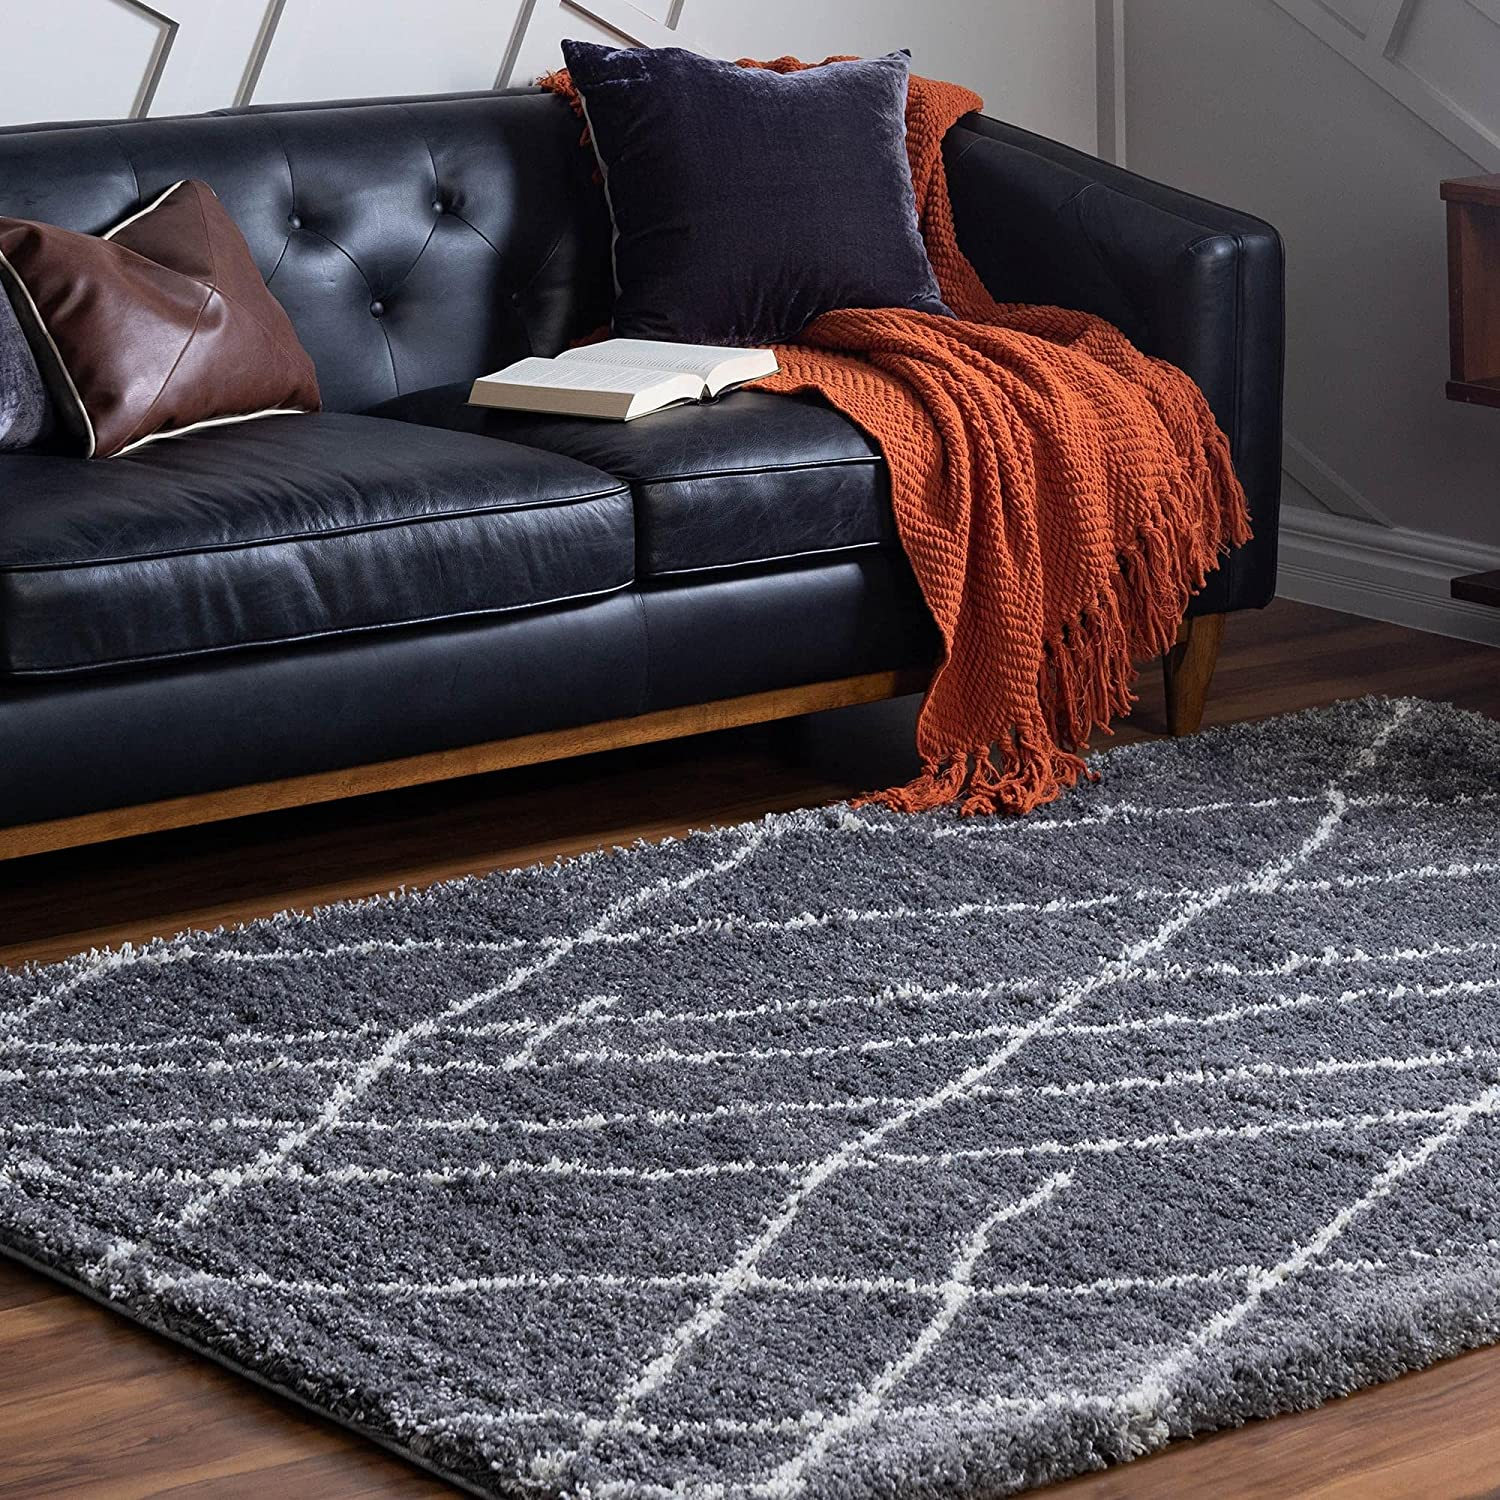 Rugs.com Soft New mail order Touch Shag Collection Area S Pebble 6x9 – High quality Rug Gray